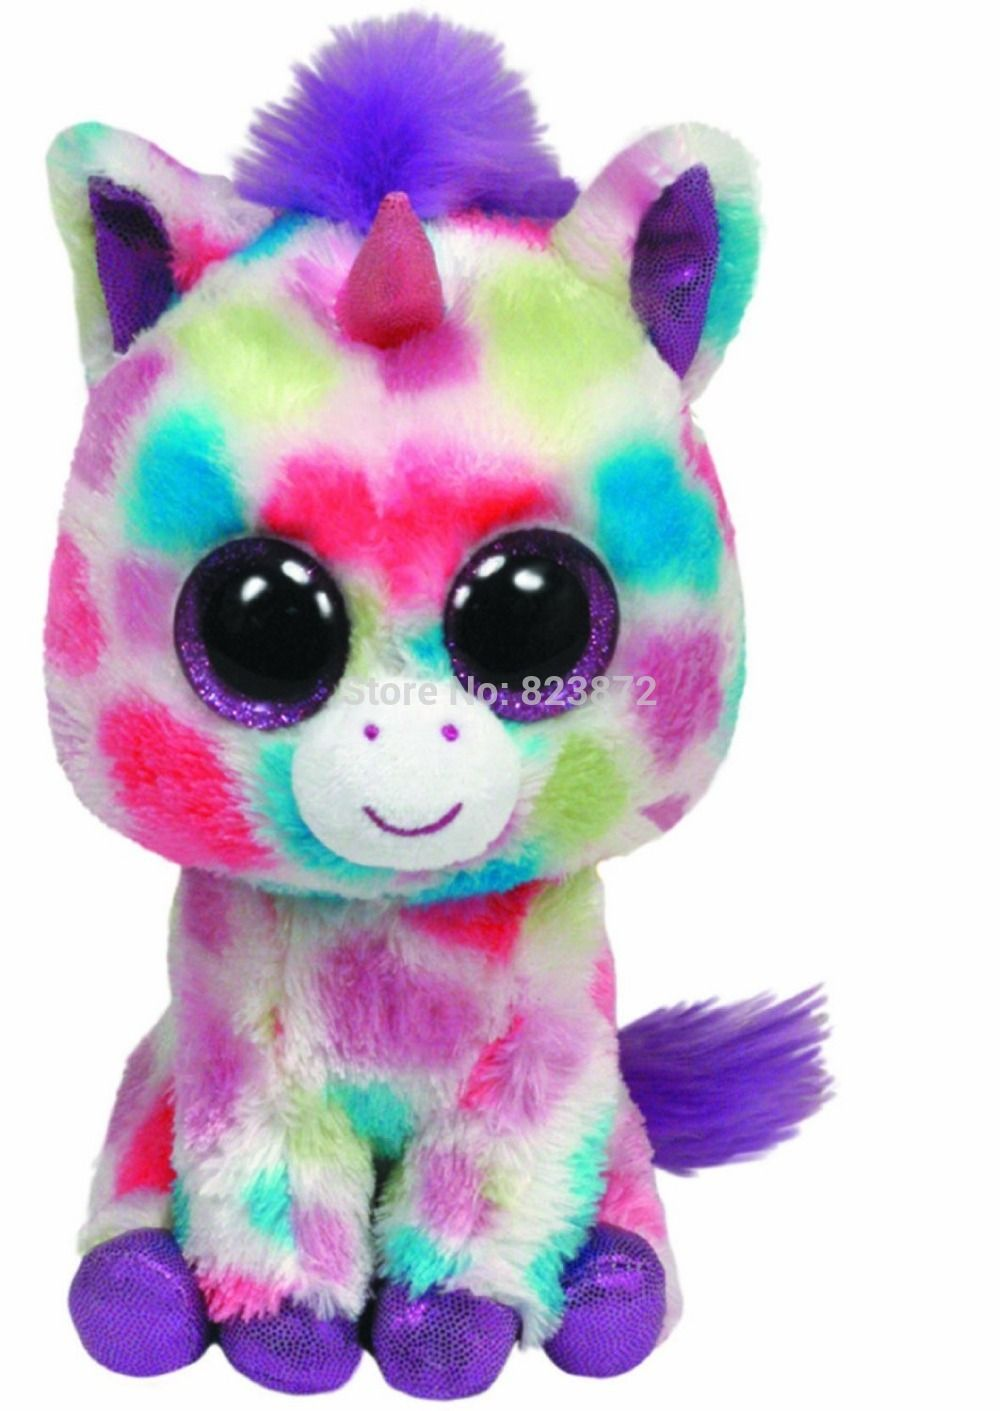 Original TY Big Eyes Beanie Boos Wishful Plush Unicorn Toys 15cm 6   Ty Big  Eyed Stuffed Animals Soft Toys for Children 526a71ddfc0a